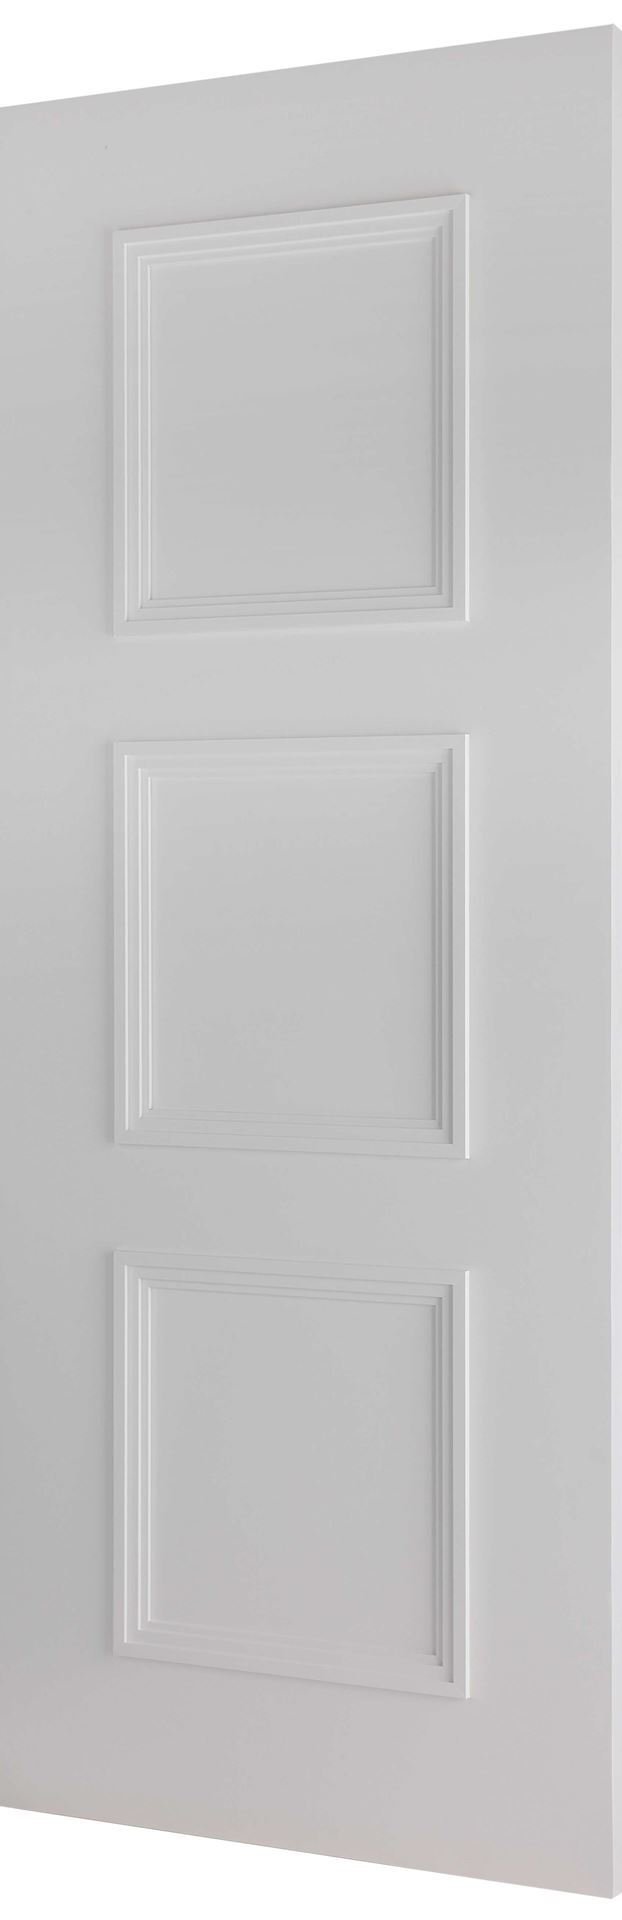 Genial Picture Of CHELSEA 3 PANEL (BESPOKE) ...